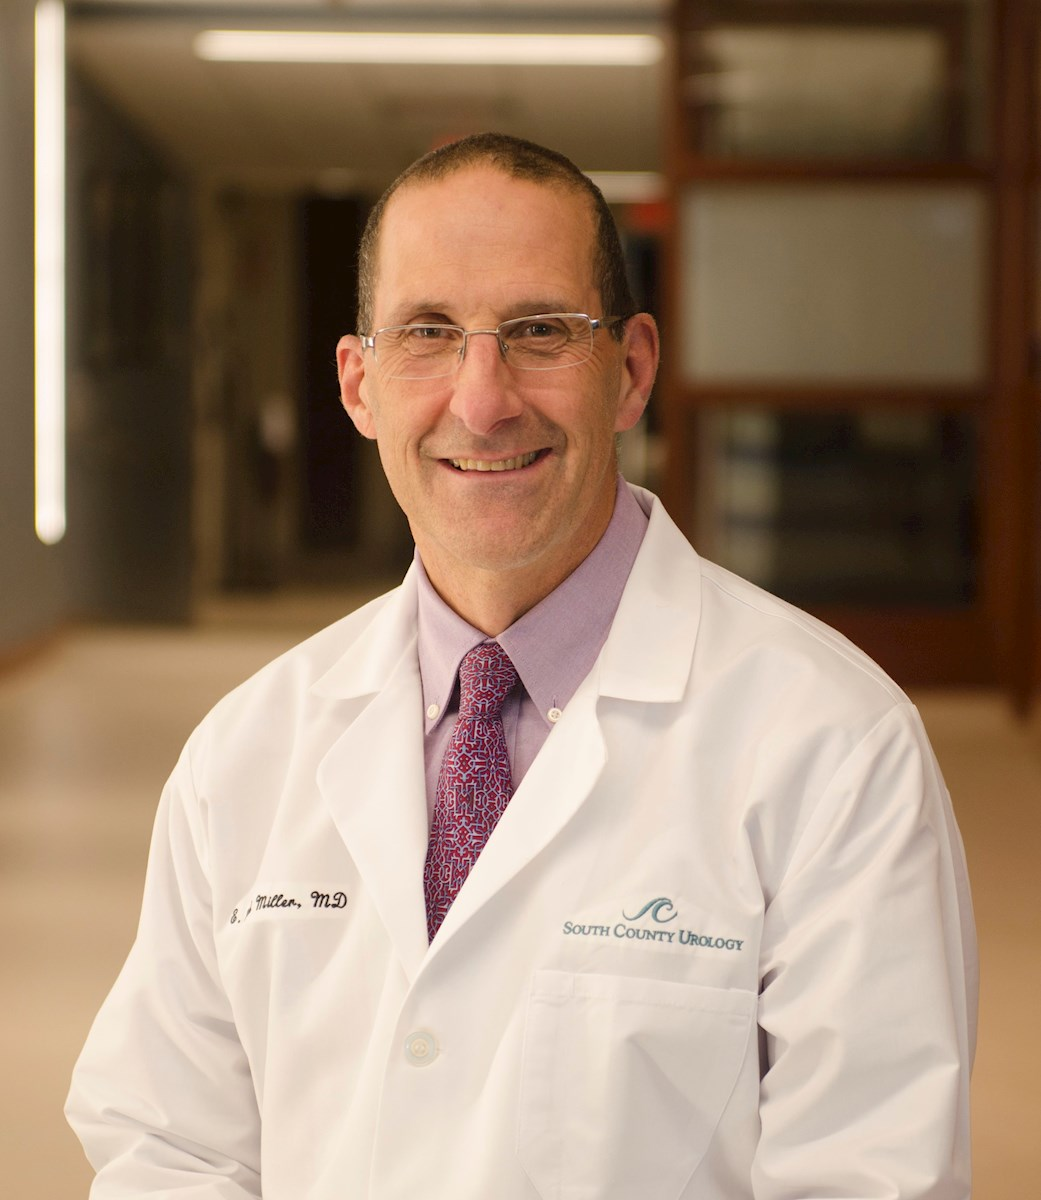 E. Bradley Miller, MD, South County Urology